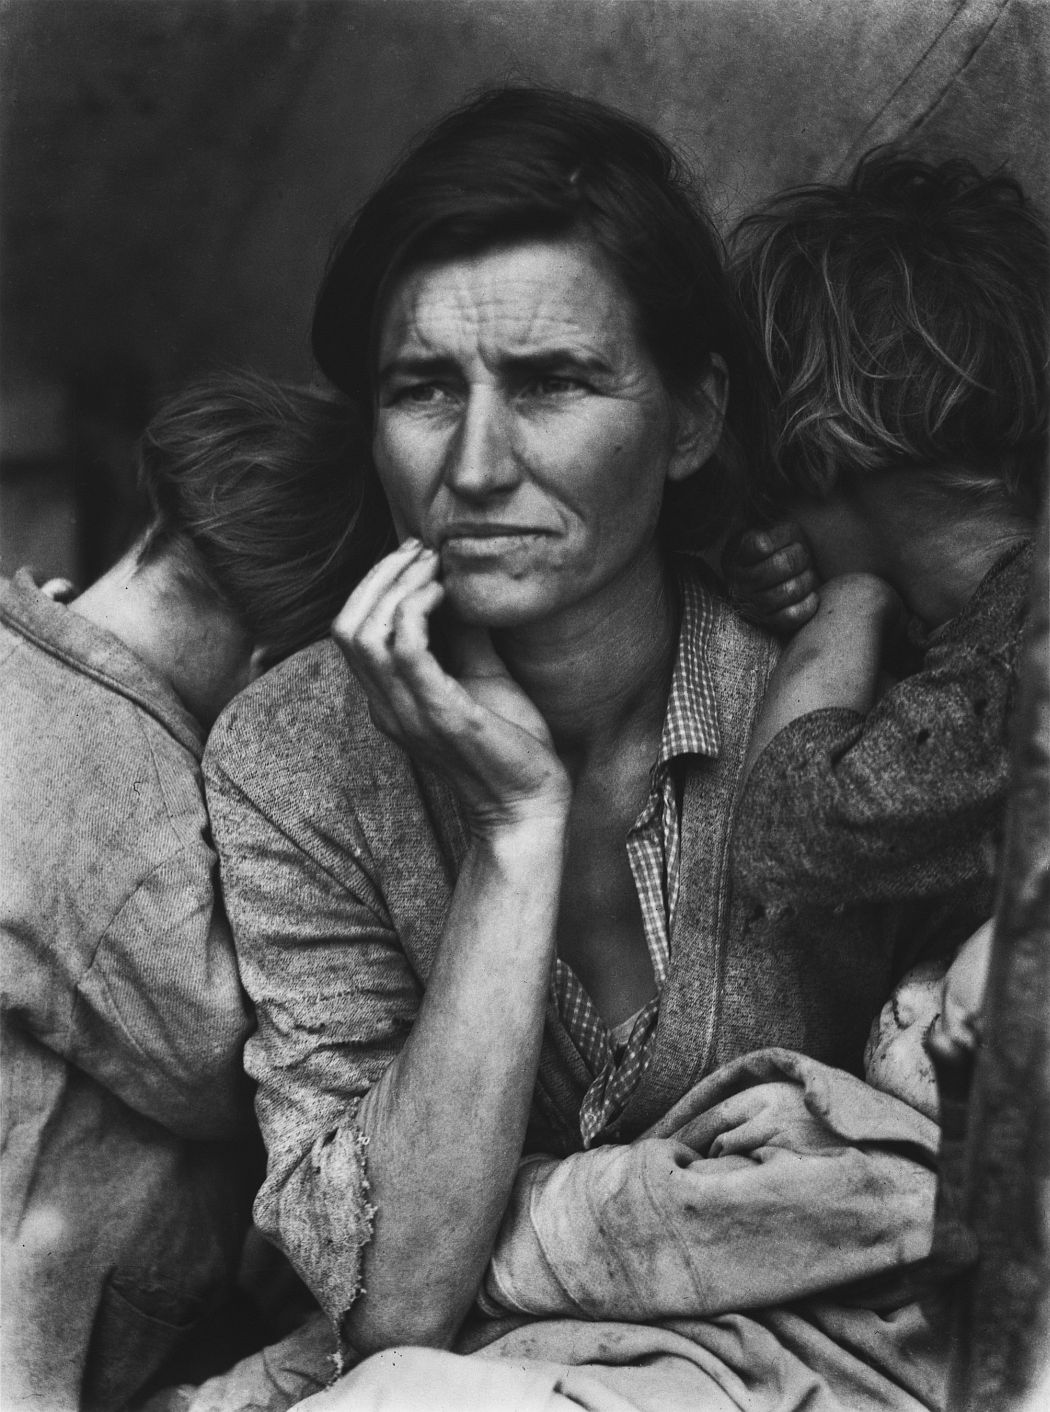 Dorothea Lange. Migrant Mother, Nipomo, California, 1936. Gelatin silver print. The Dorothea Lange Collection, the Oakland Museum of California, gift of Paul S. Taylor